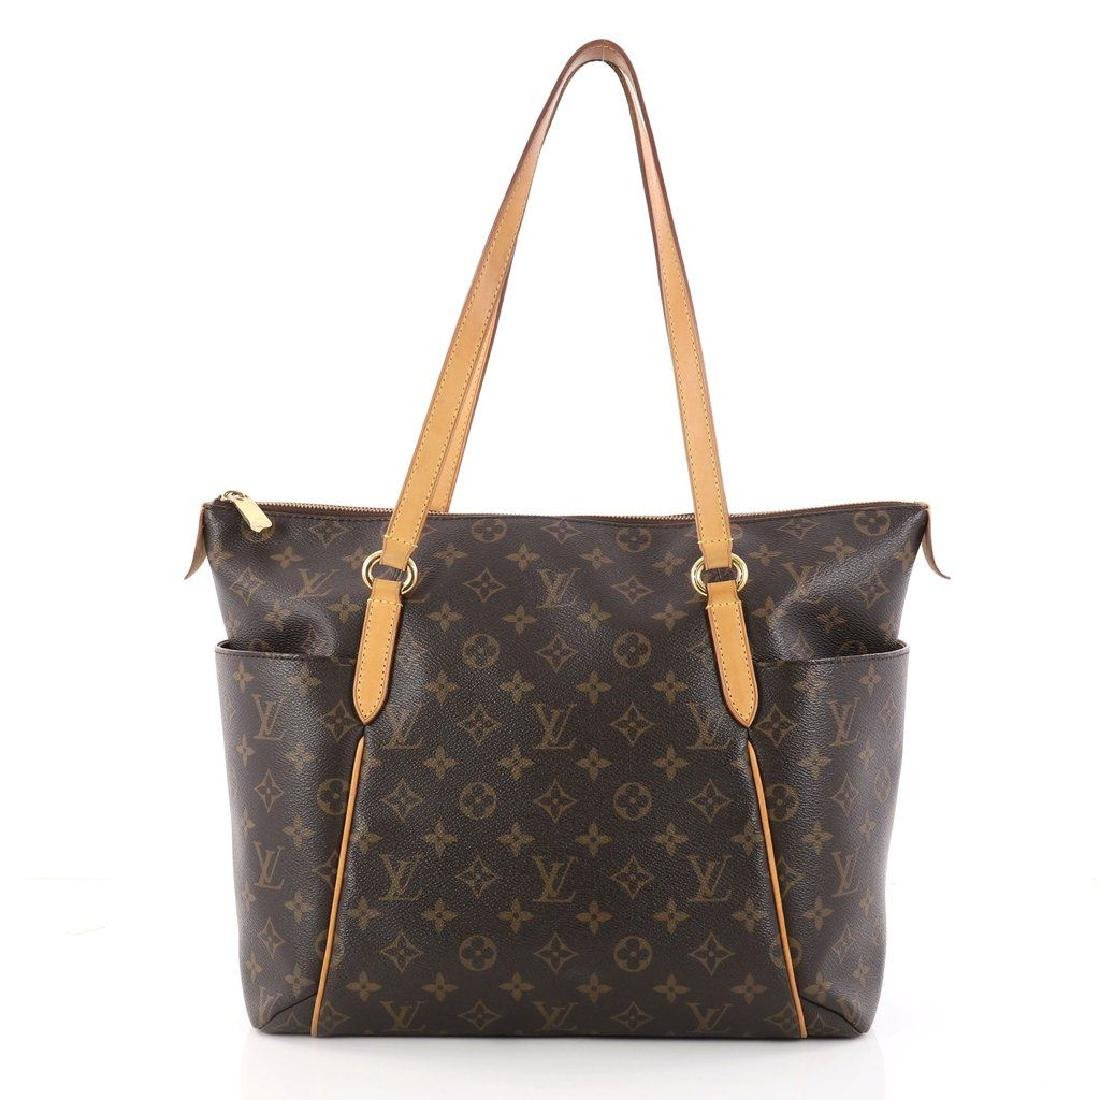 Louis Vuitton Discontinued Totally Monogram Shoulder